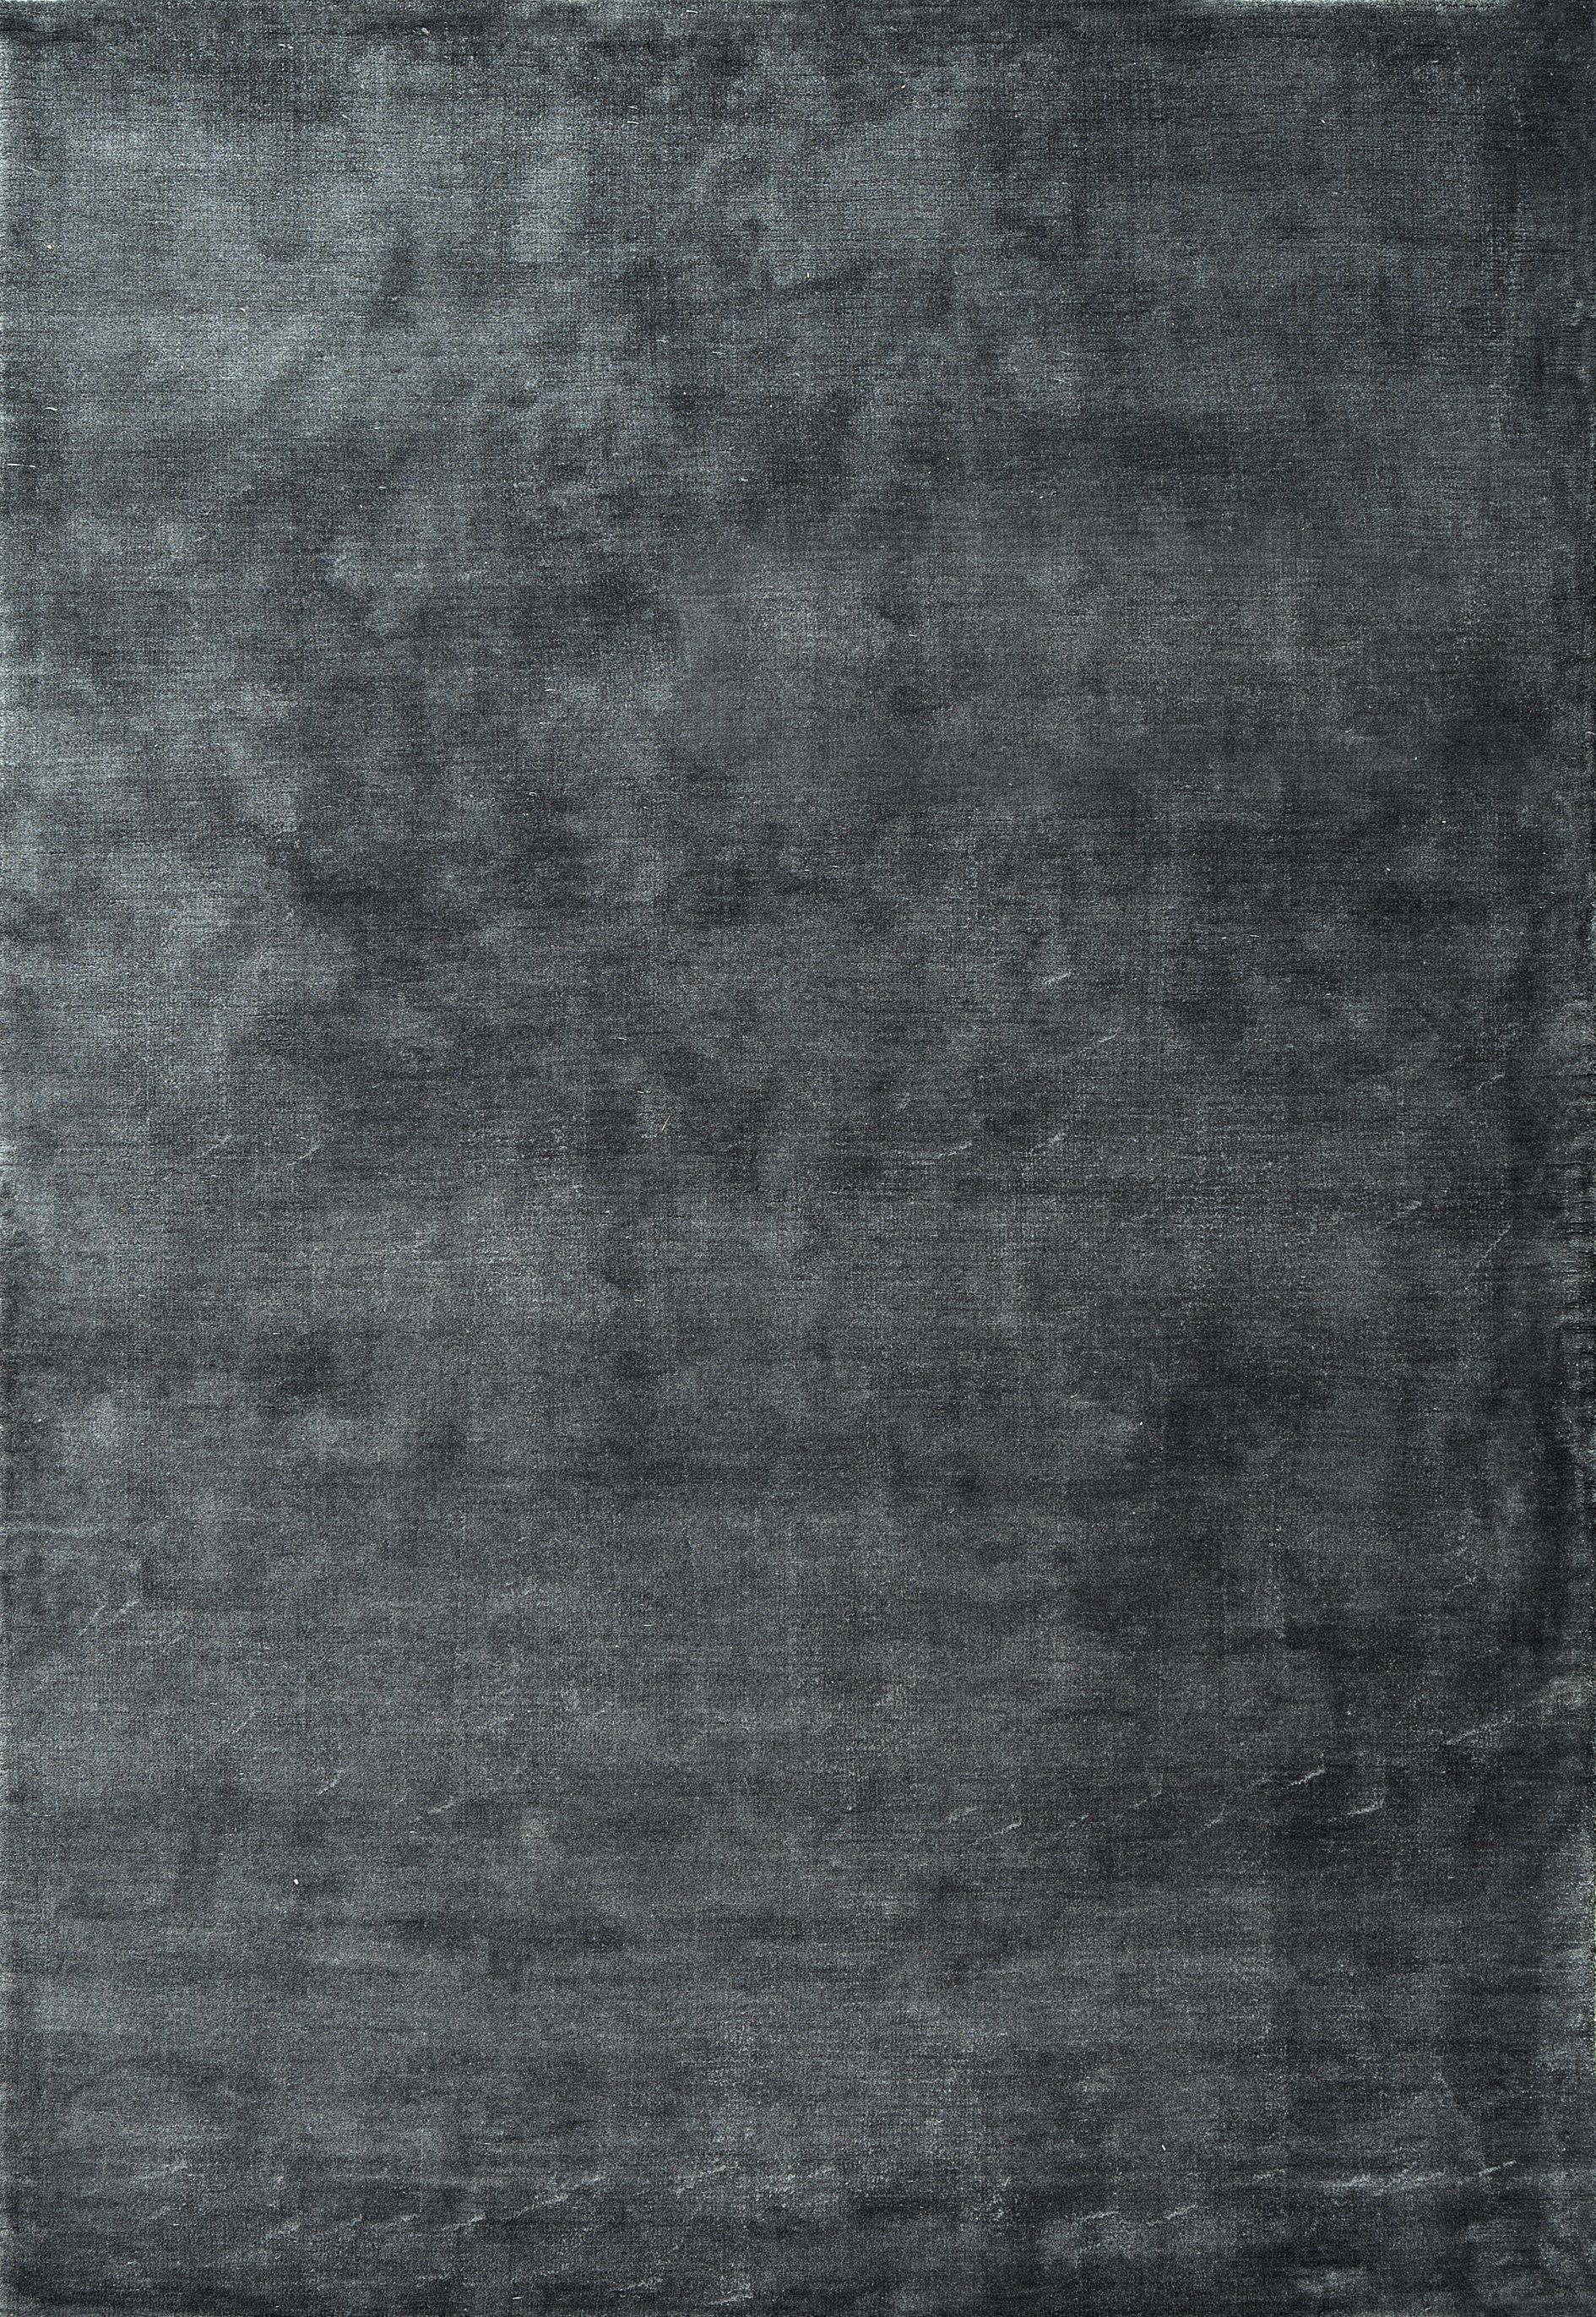 Plantation Rug Co Sade Soft Polyester 80x150 Charcoal 100 00 Bluewater